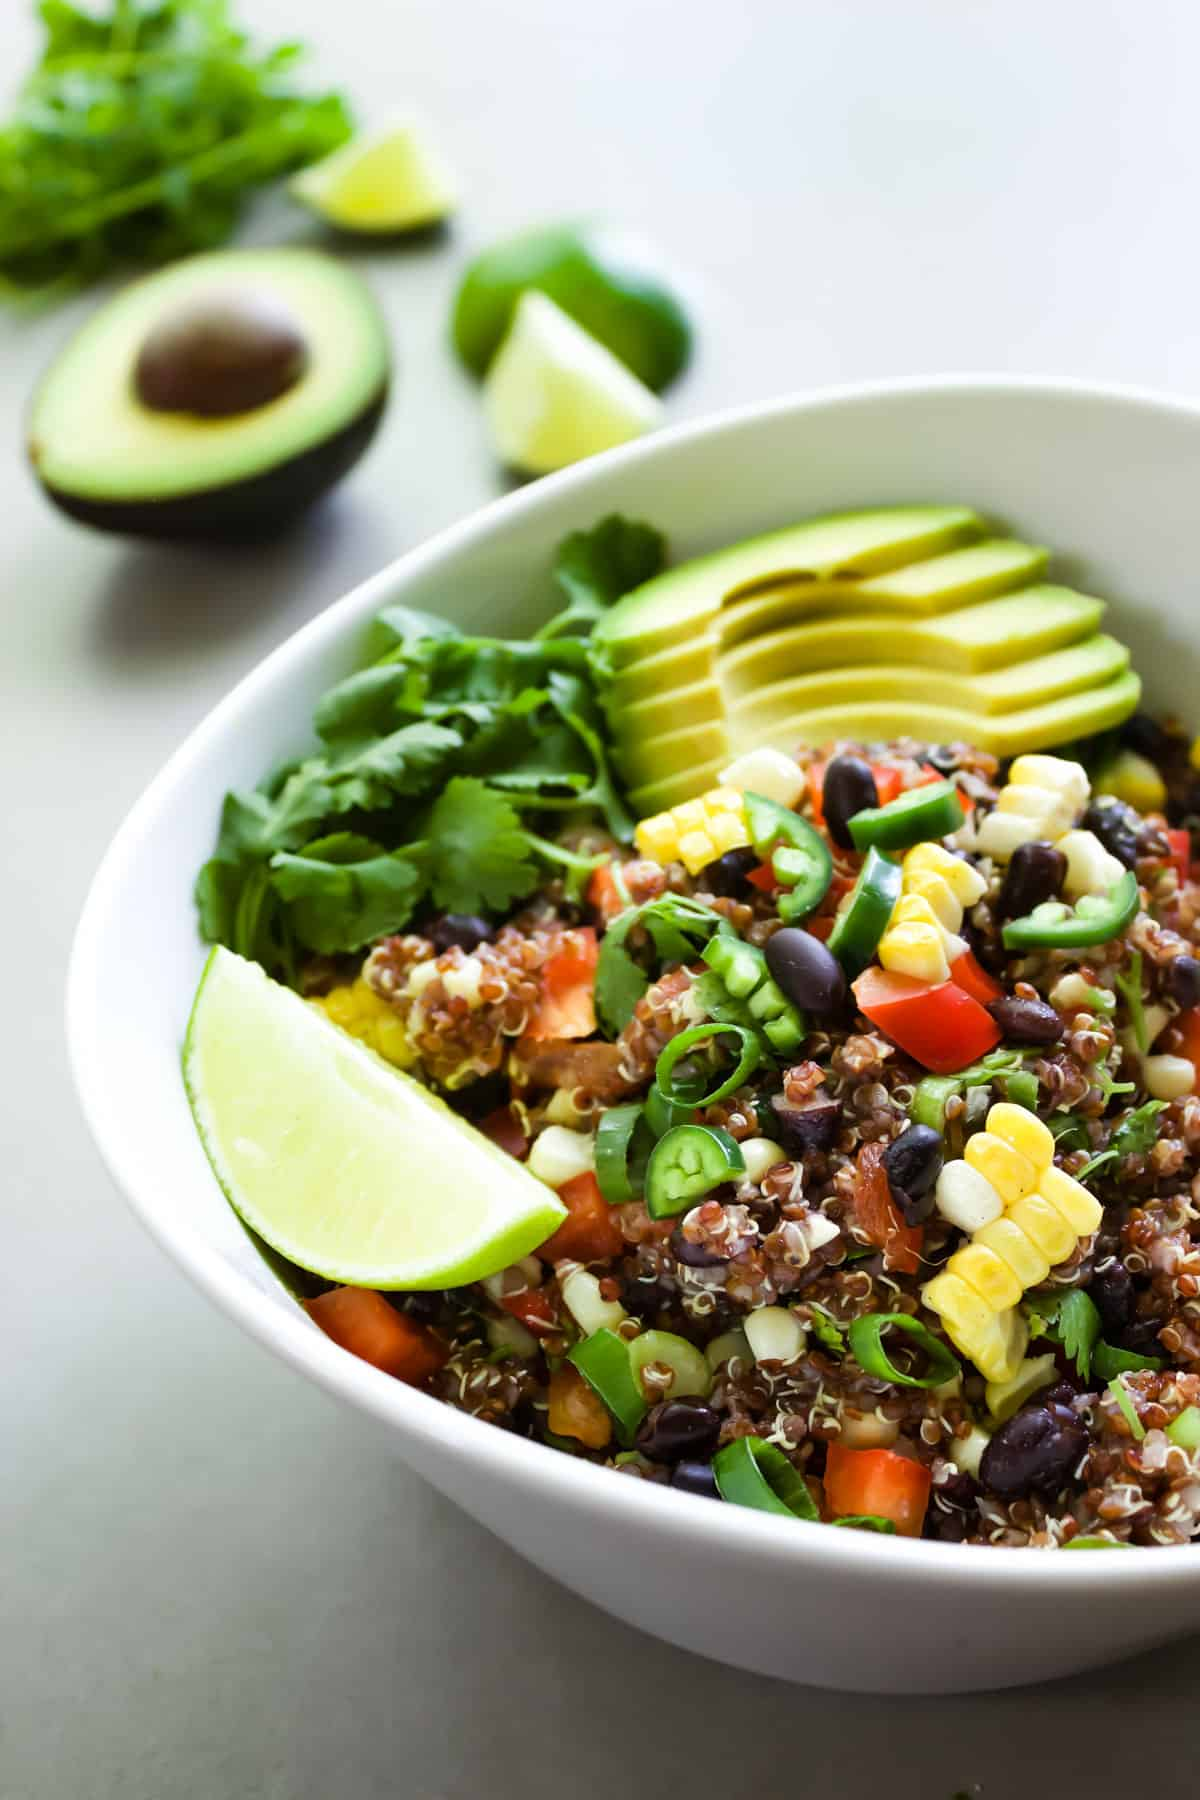 A bowl of spicy red quinoa salad served with lime and avocado.